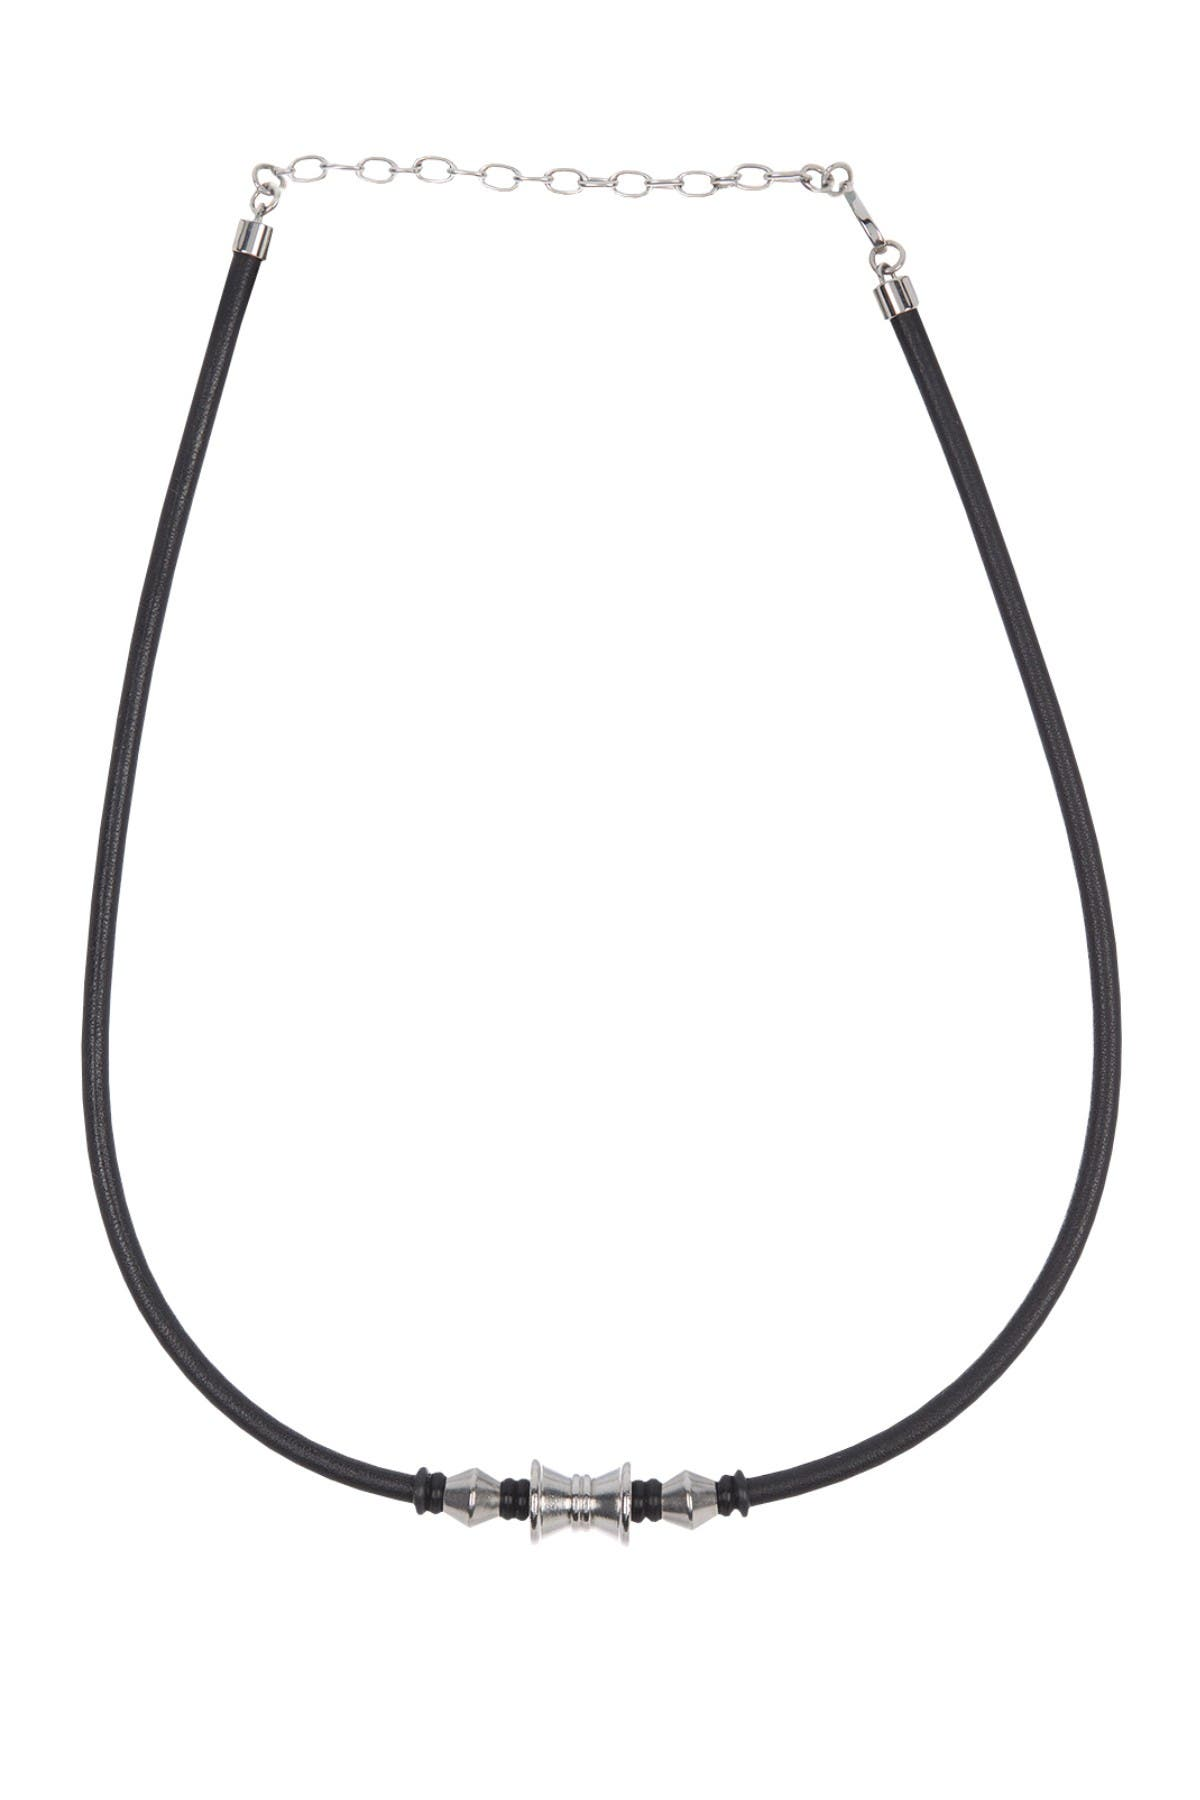 Image of Bruno Banani Leather & Stainless Steel Necklace